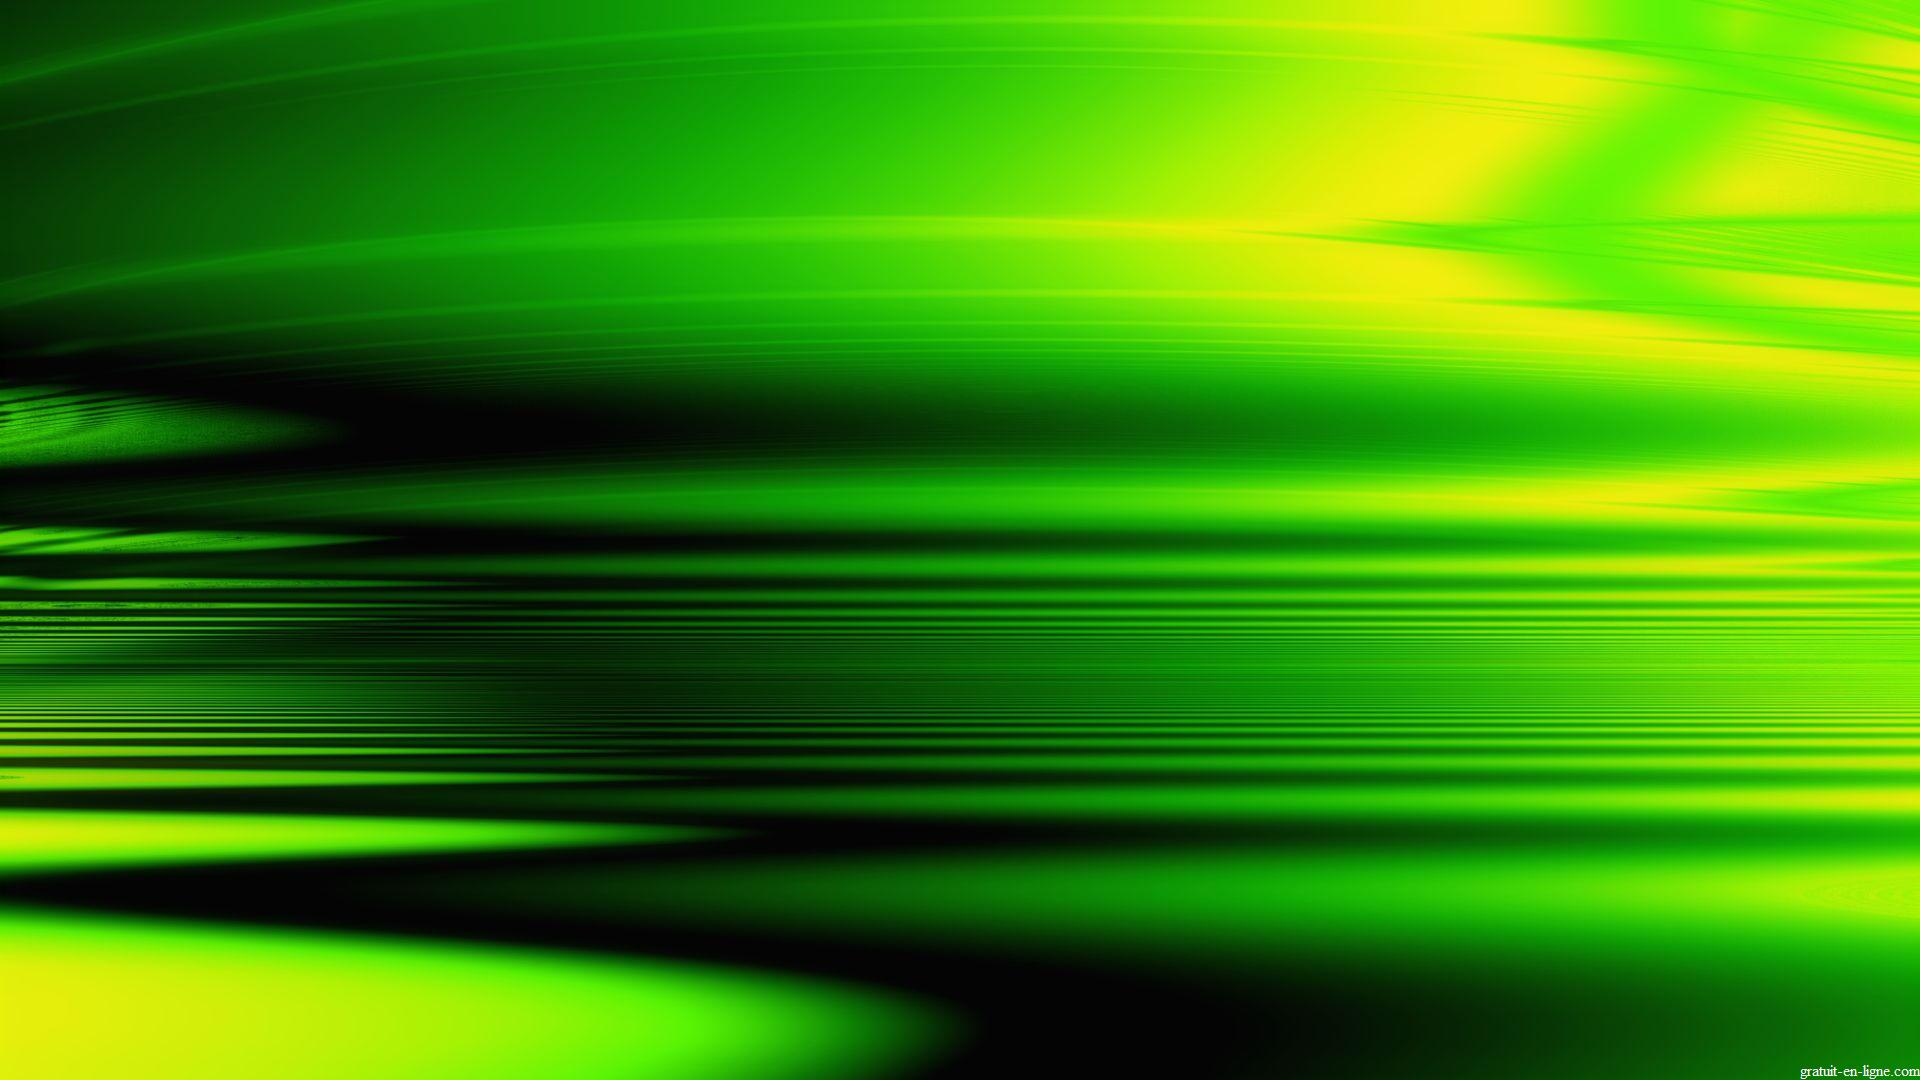 Technology green wallpaper 368898 for Fond image gratuit